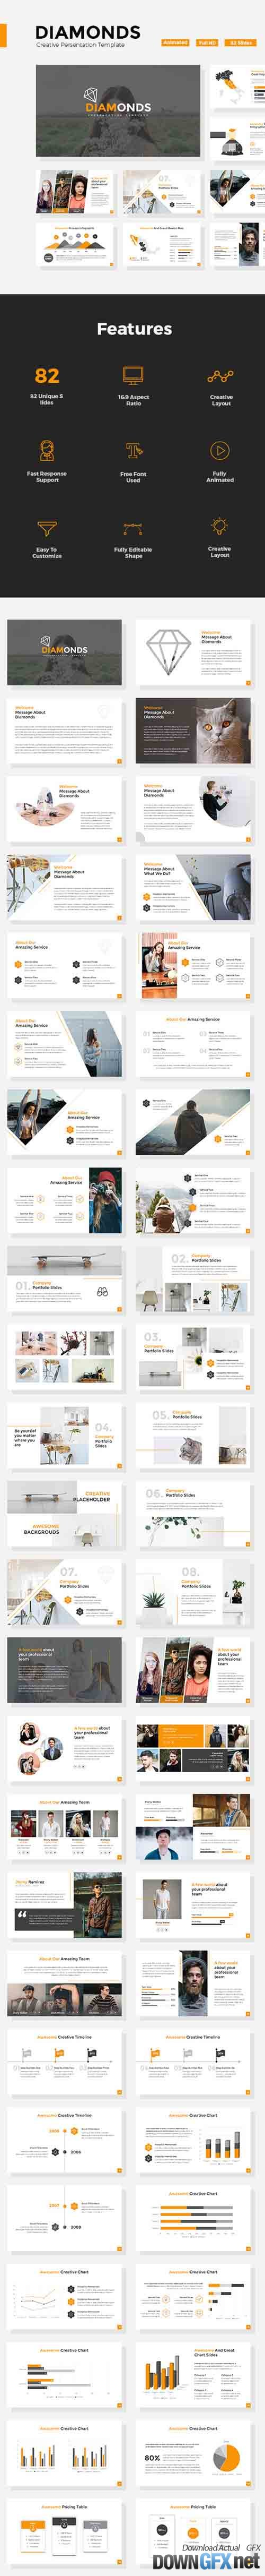 Diamonds - Creative Powerpoint Template 20708030